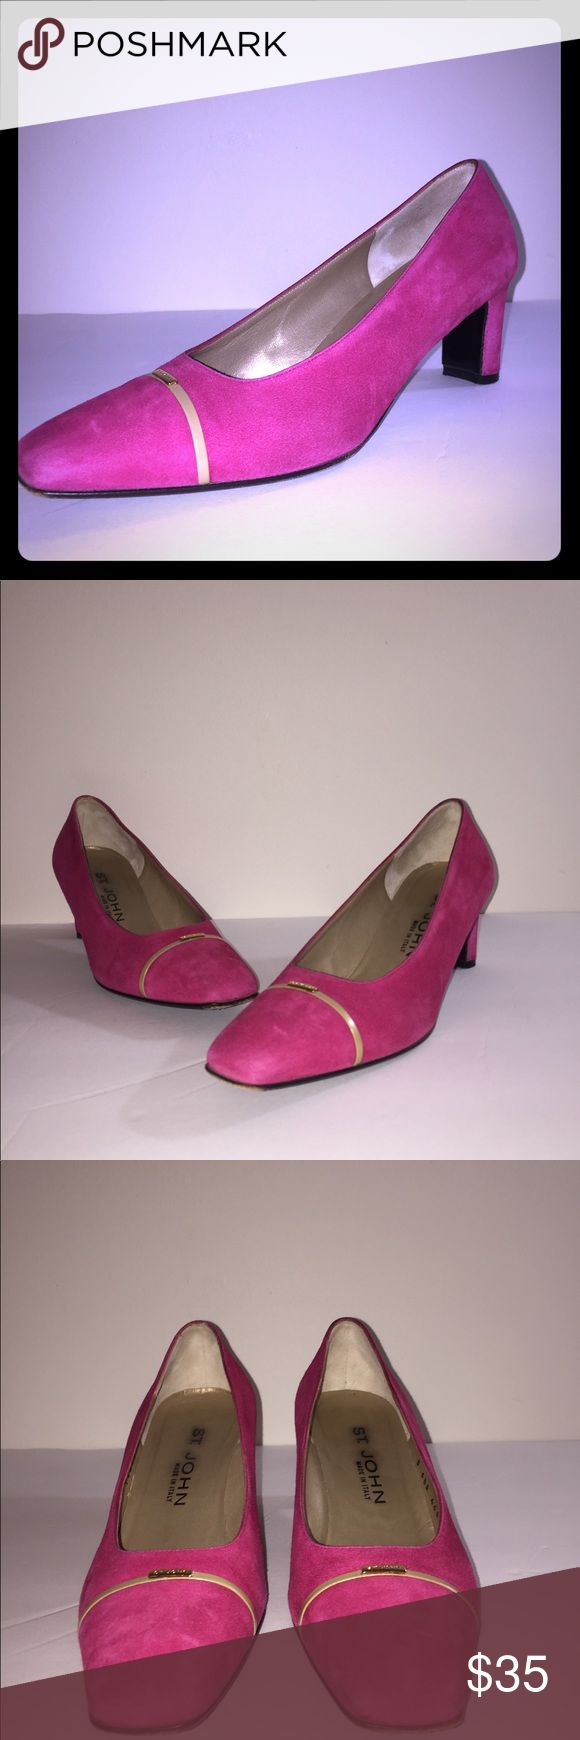 St John pink suede heel size 6.5 A worn but well taken care of pair of heels from knitwear designer St. John. Perfect for the office or a luncheon. Size 6.5. St. John Shoes Heels